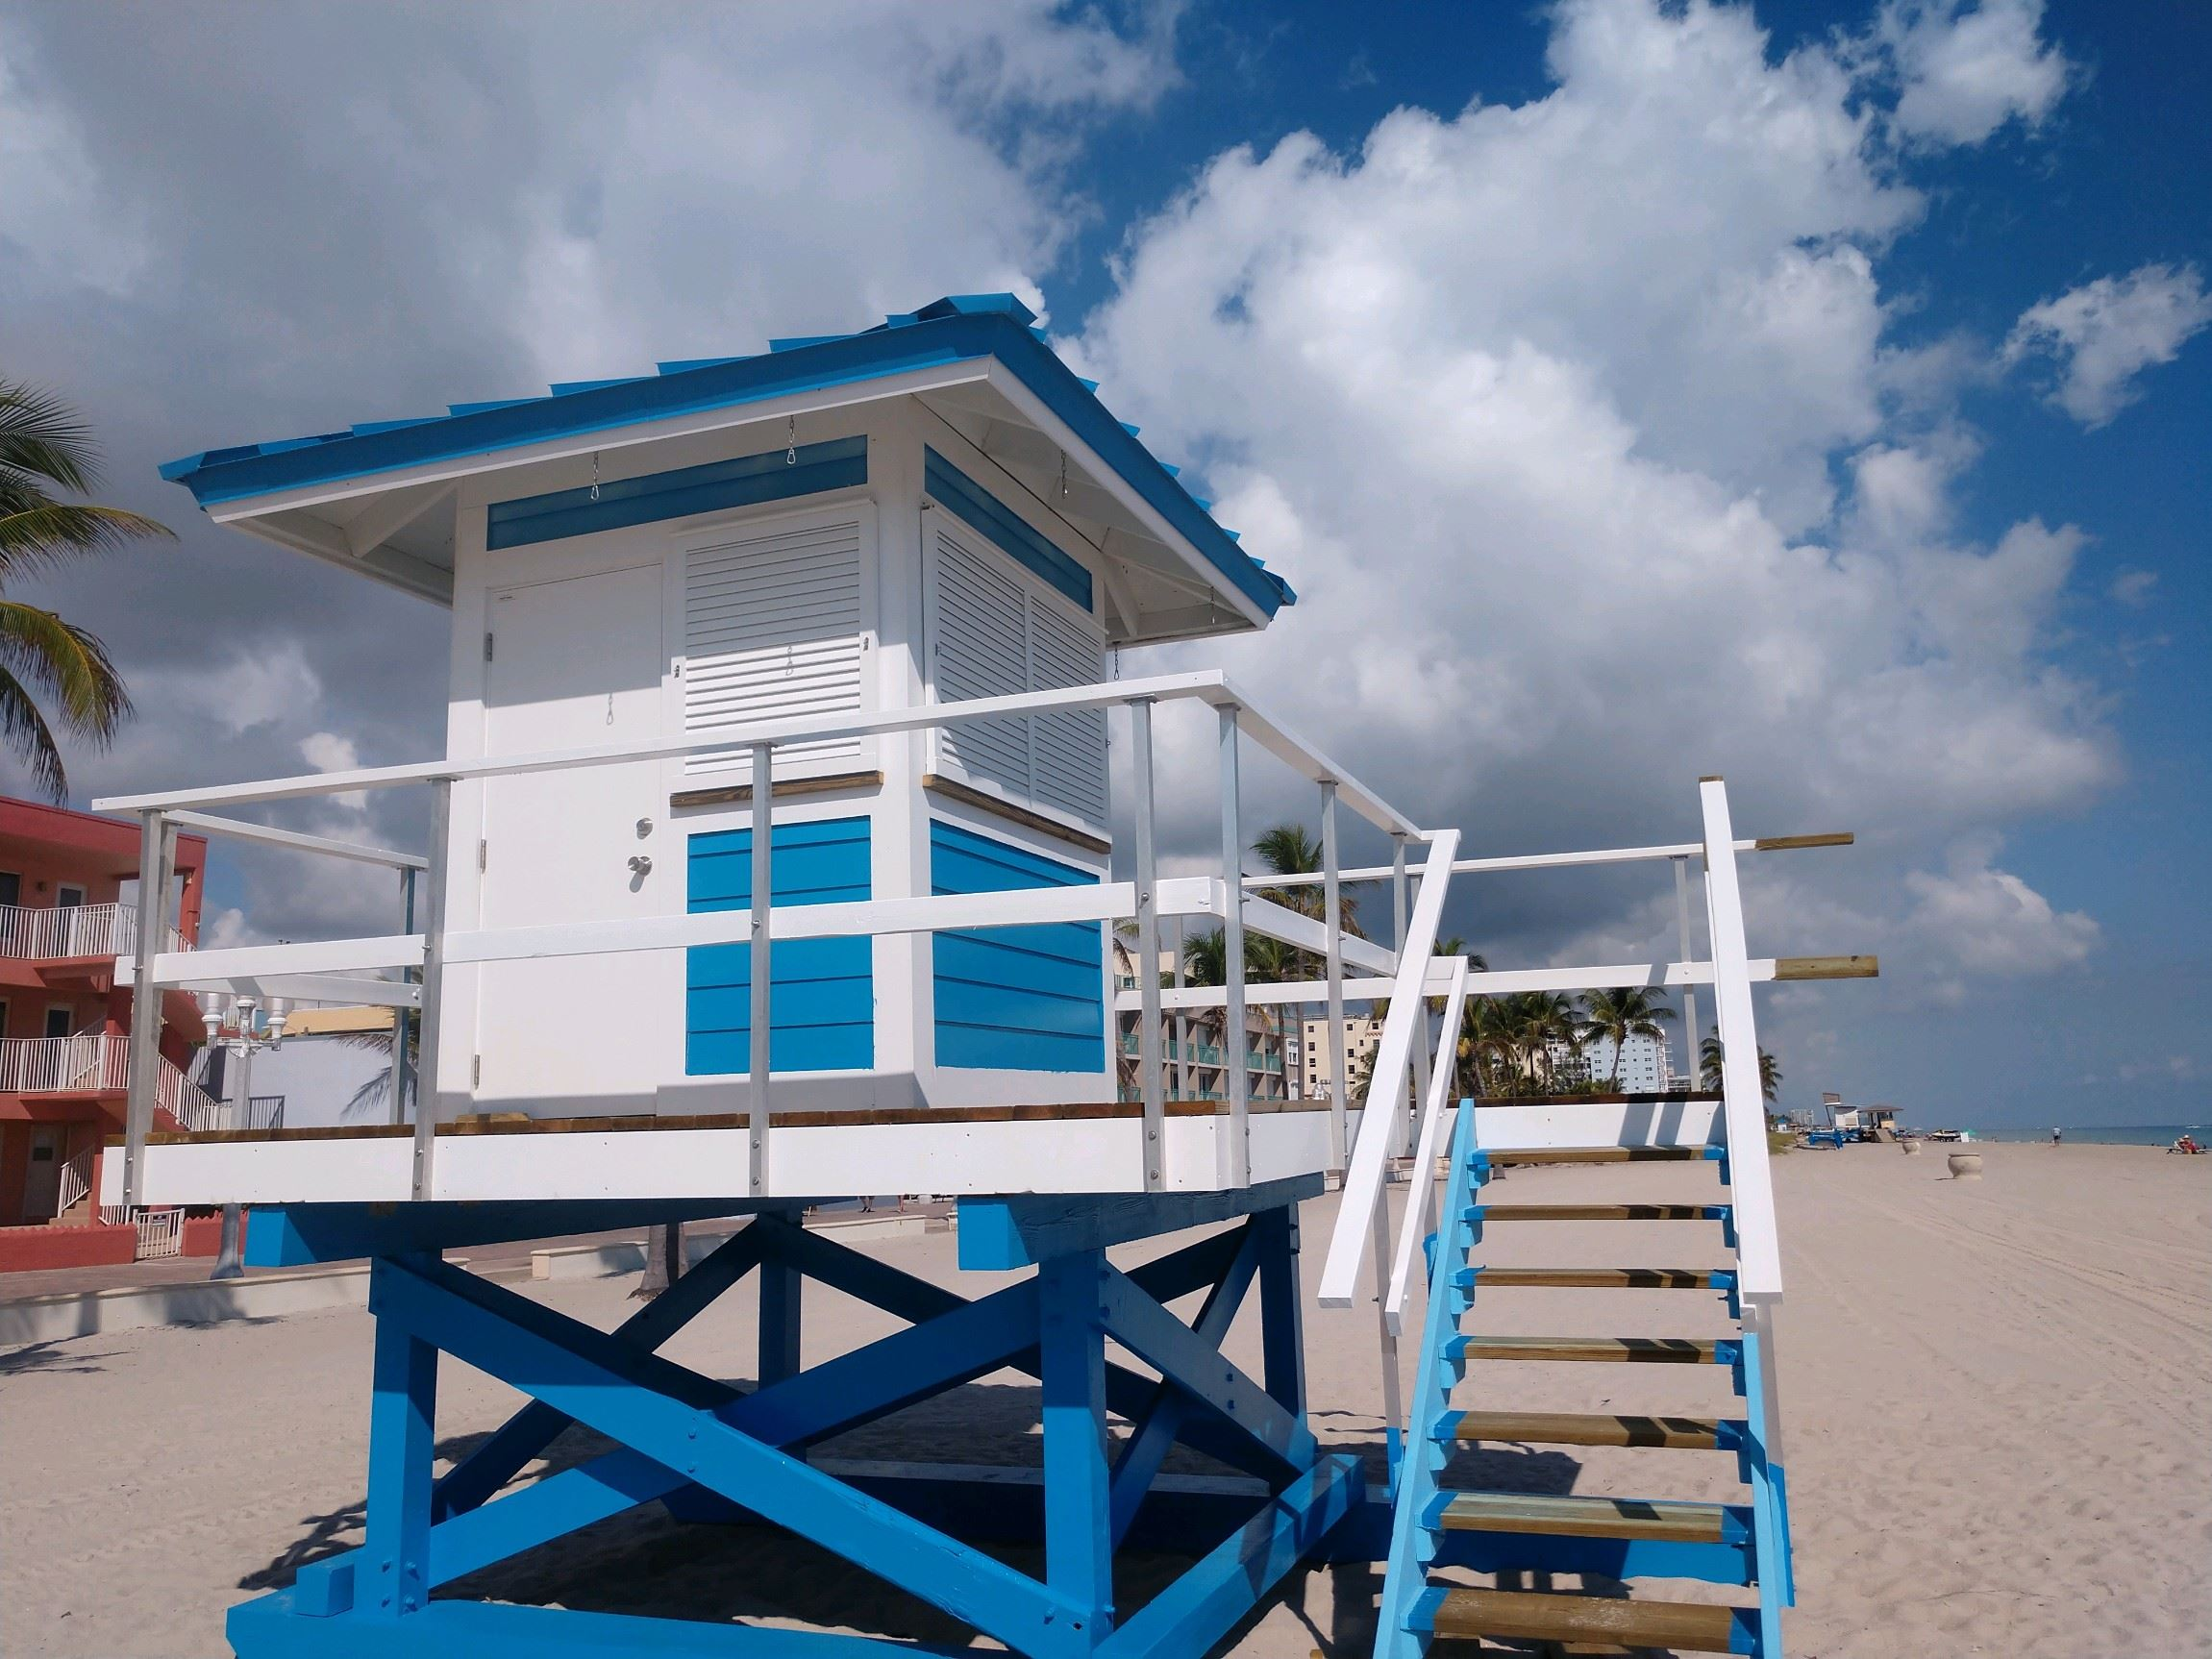 new lifeguard tower installed